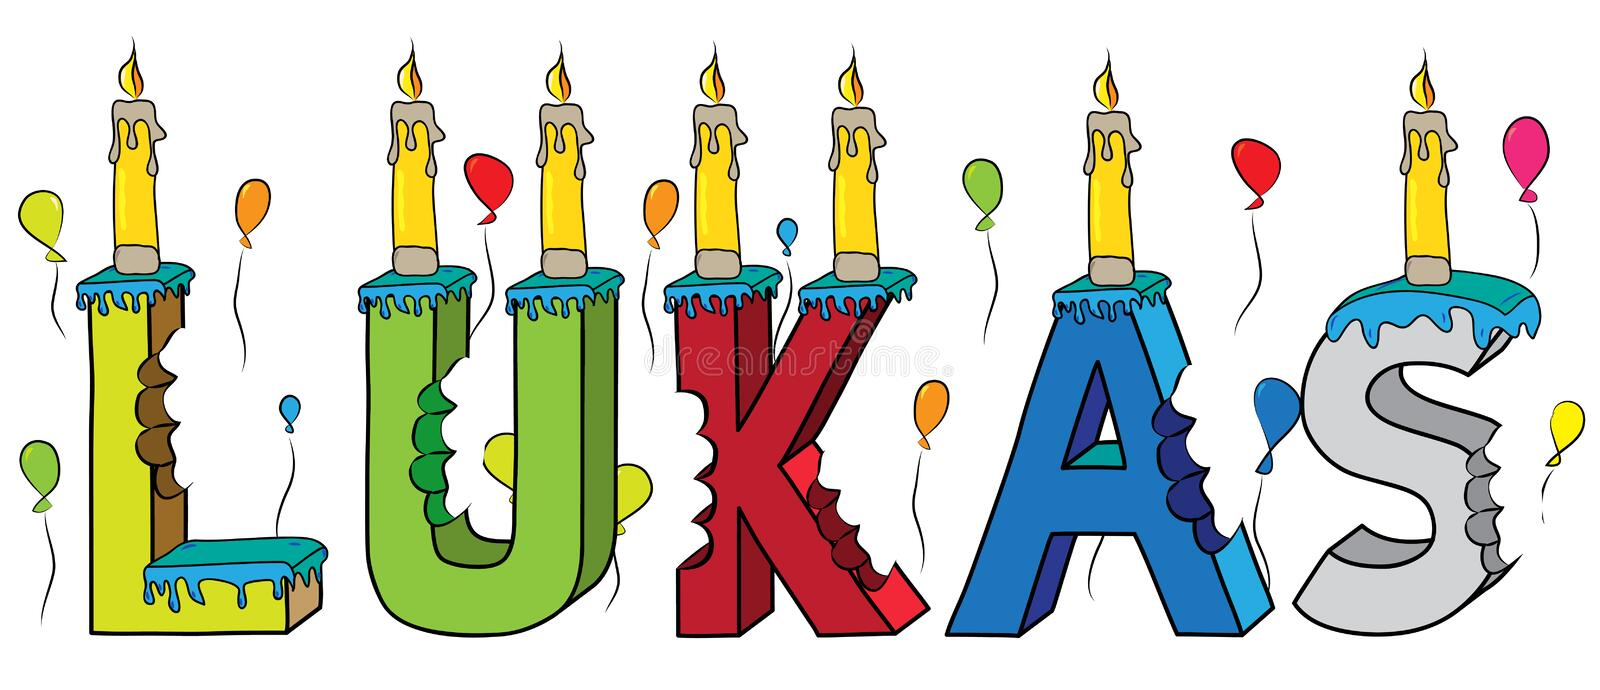 Lukas male first name bitten colorful 3d lettering birthday cake with candles and balloons royalty free illustration